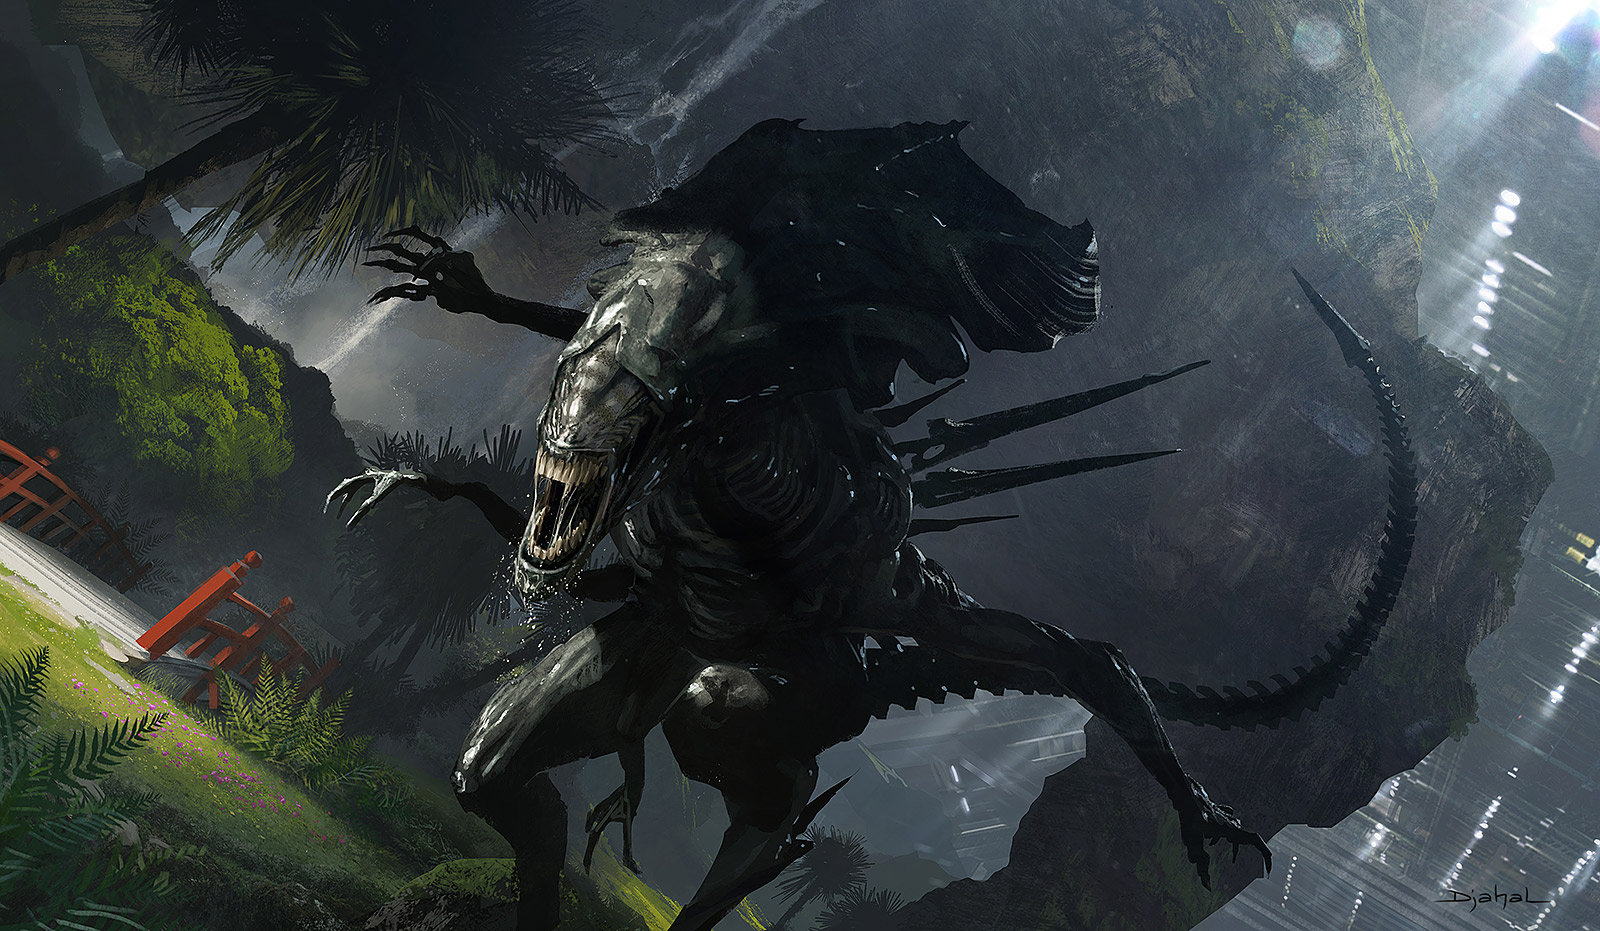 Alien 5 Neill Blomkamp Film Project Concept Art by Geoffroy Thoorens